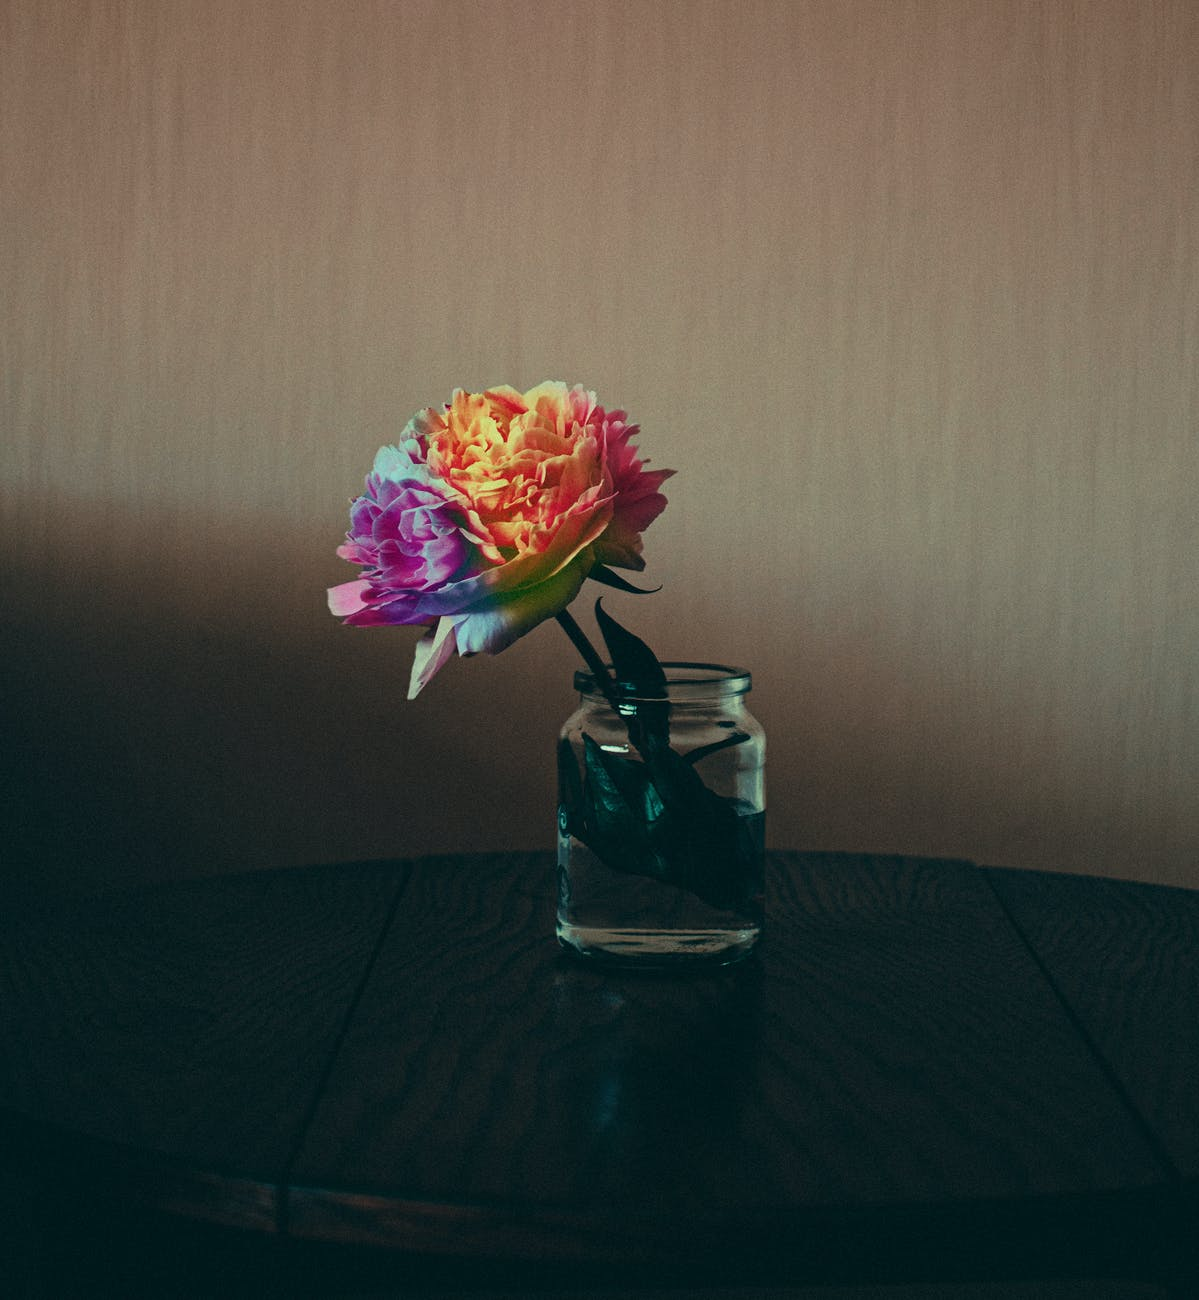 photo of rainbow colored flower in glass jar